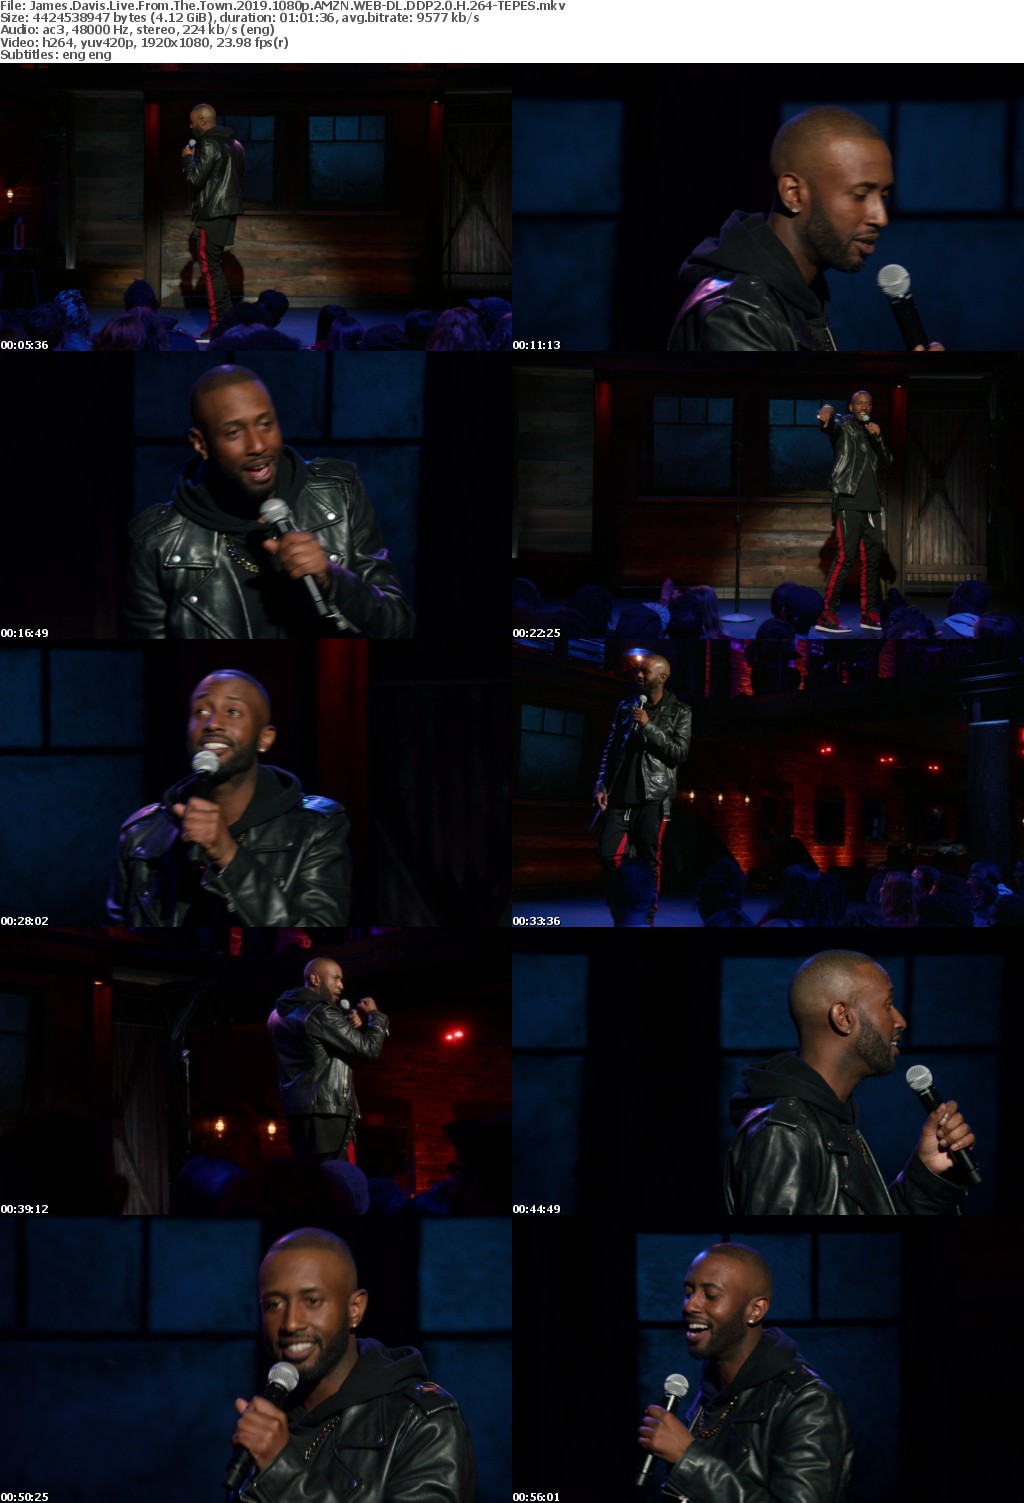 James Davis Live From The Town (2019) 1080p AMZN WEBRip DDP2.0 x264-TEPES